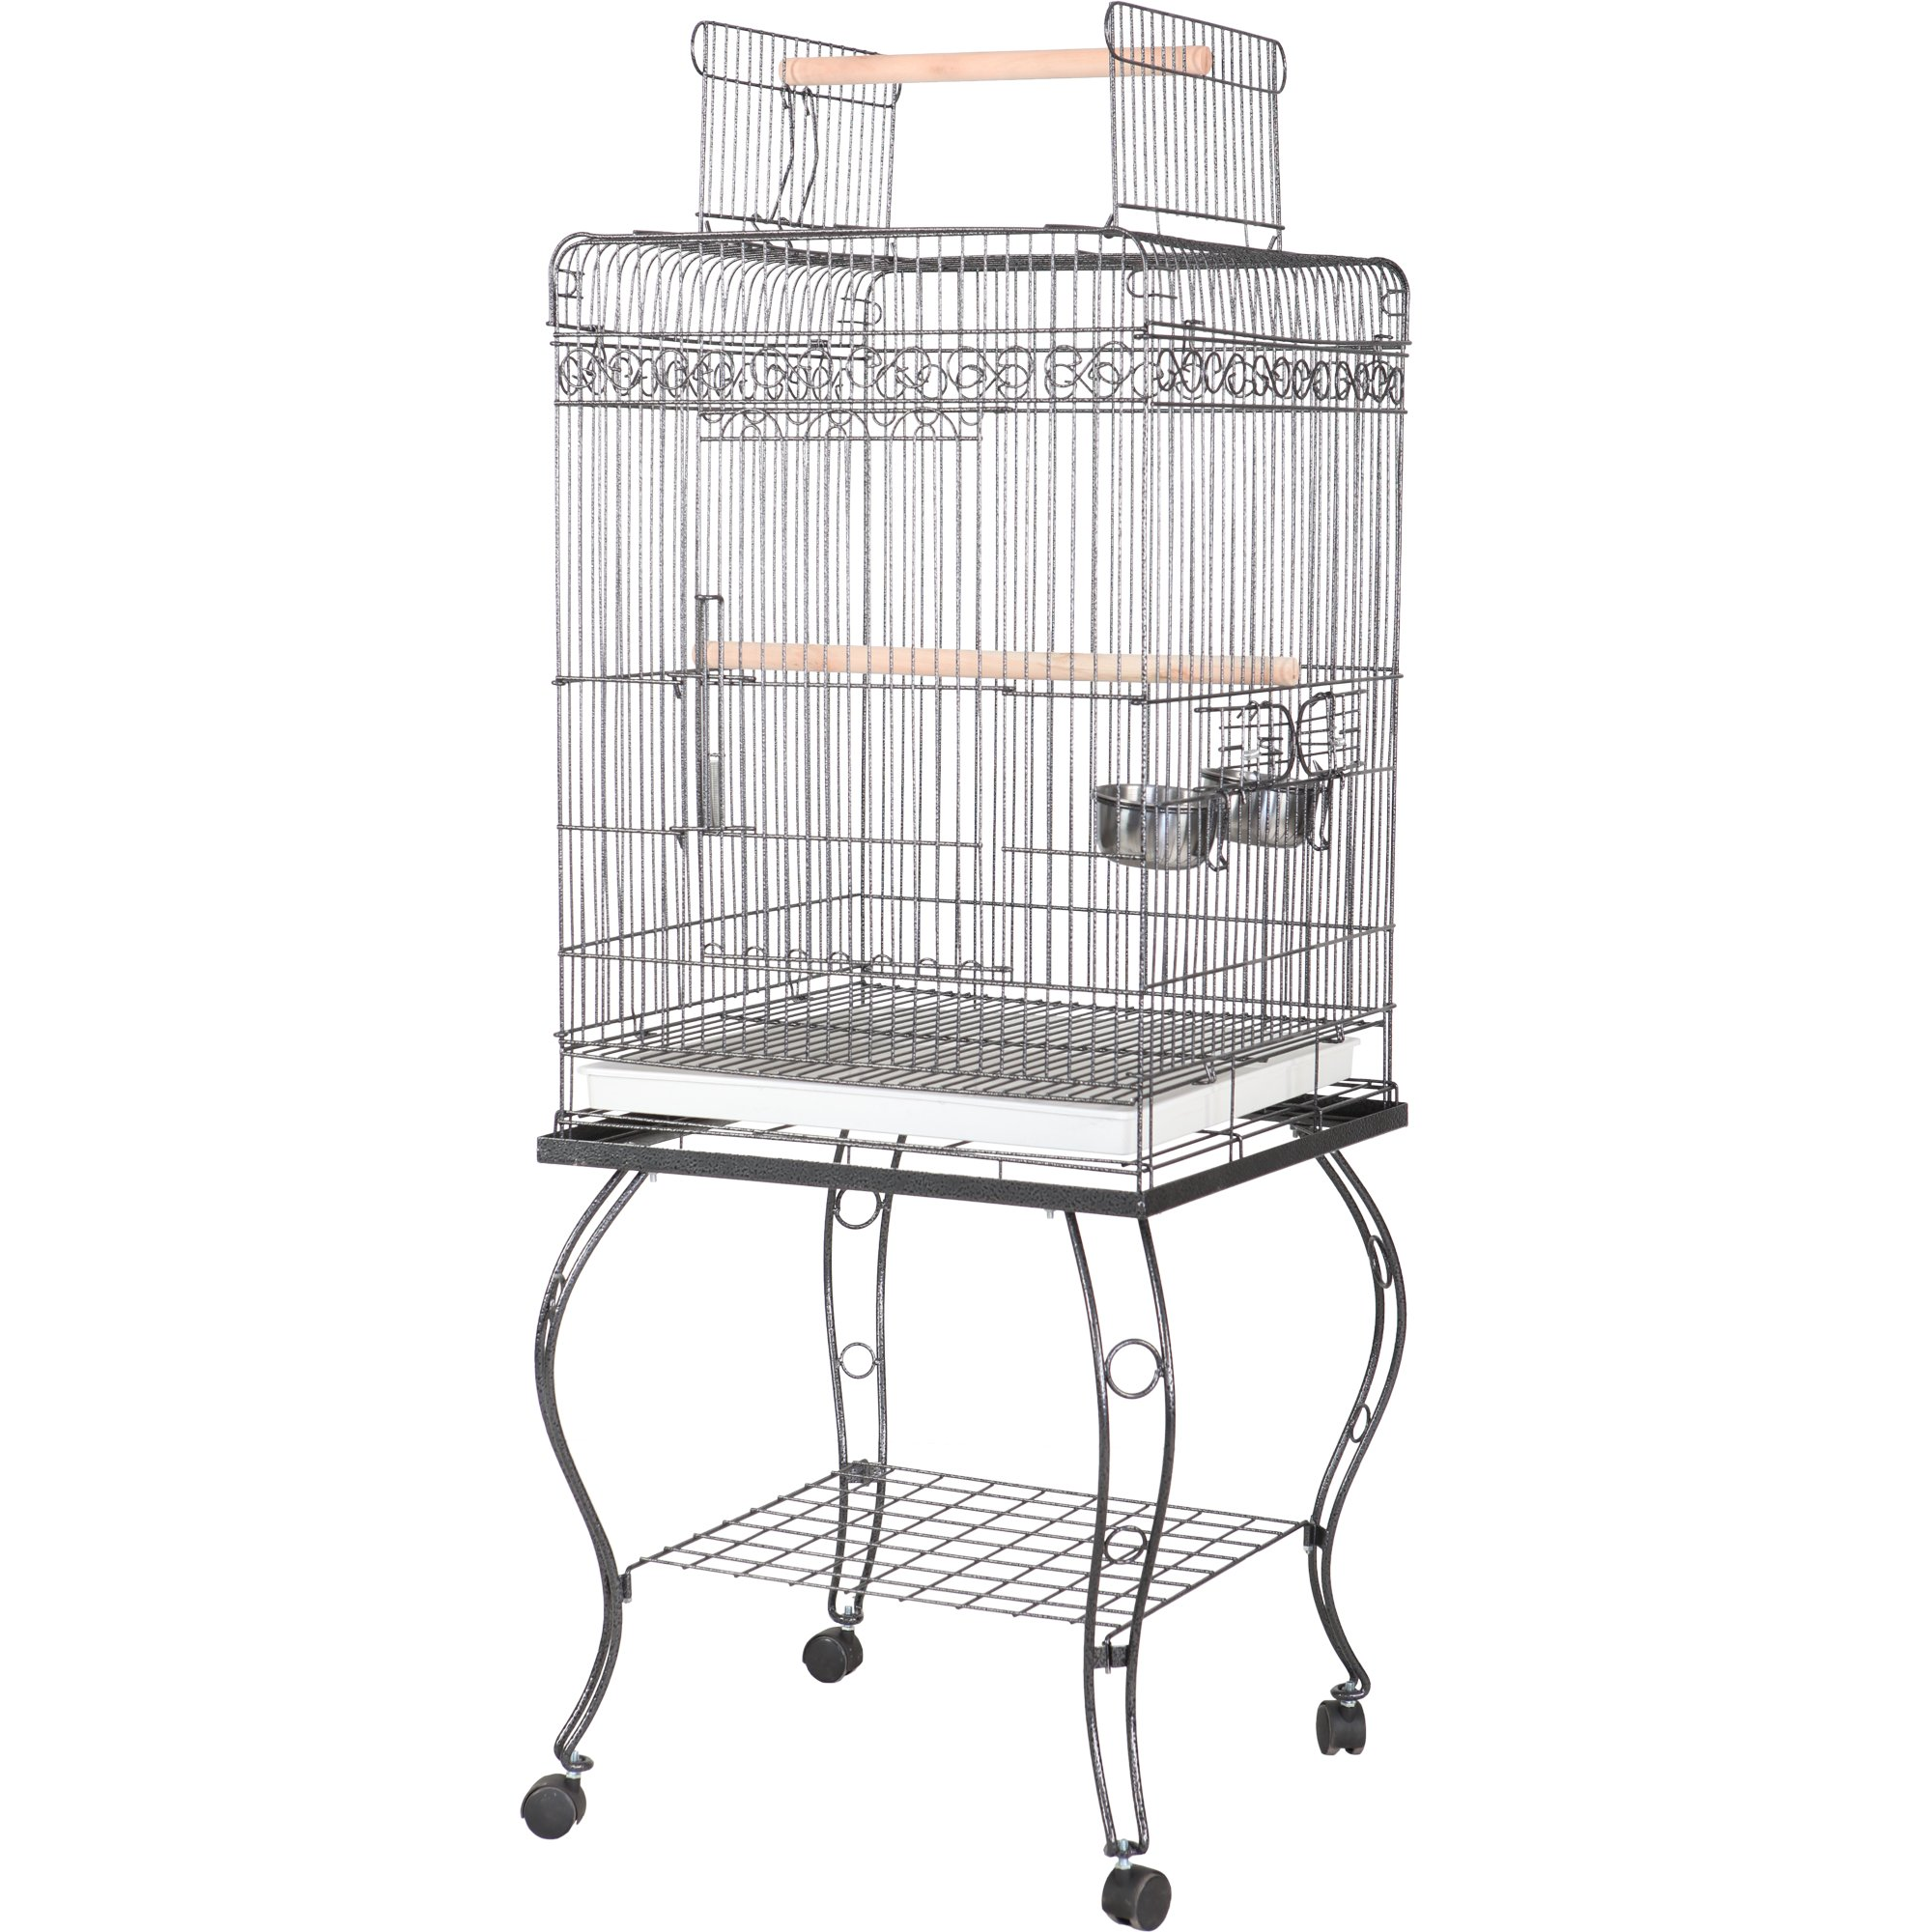 "A&E Cage Company 20"" X 20"" Play Top Bird Cage in Platinum"